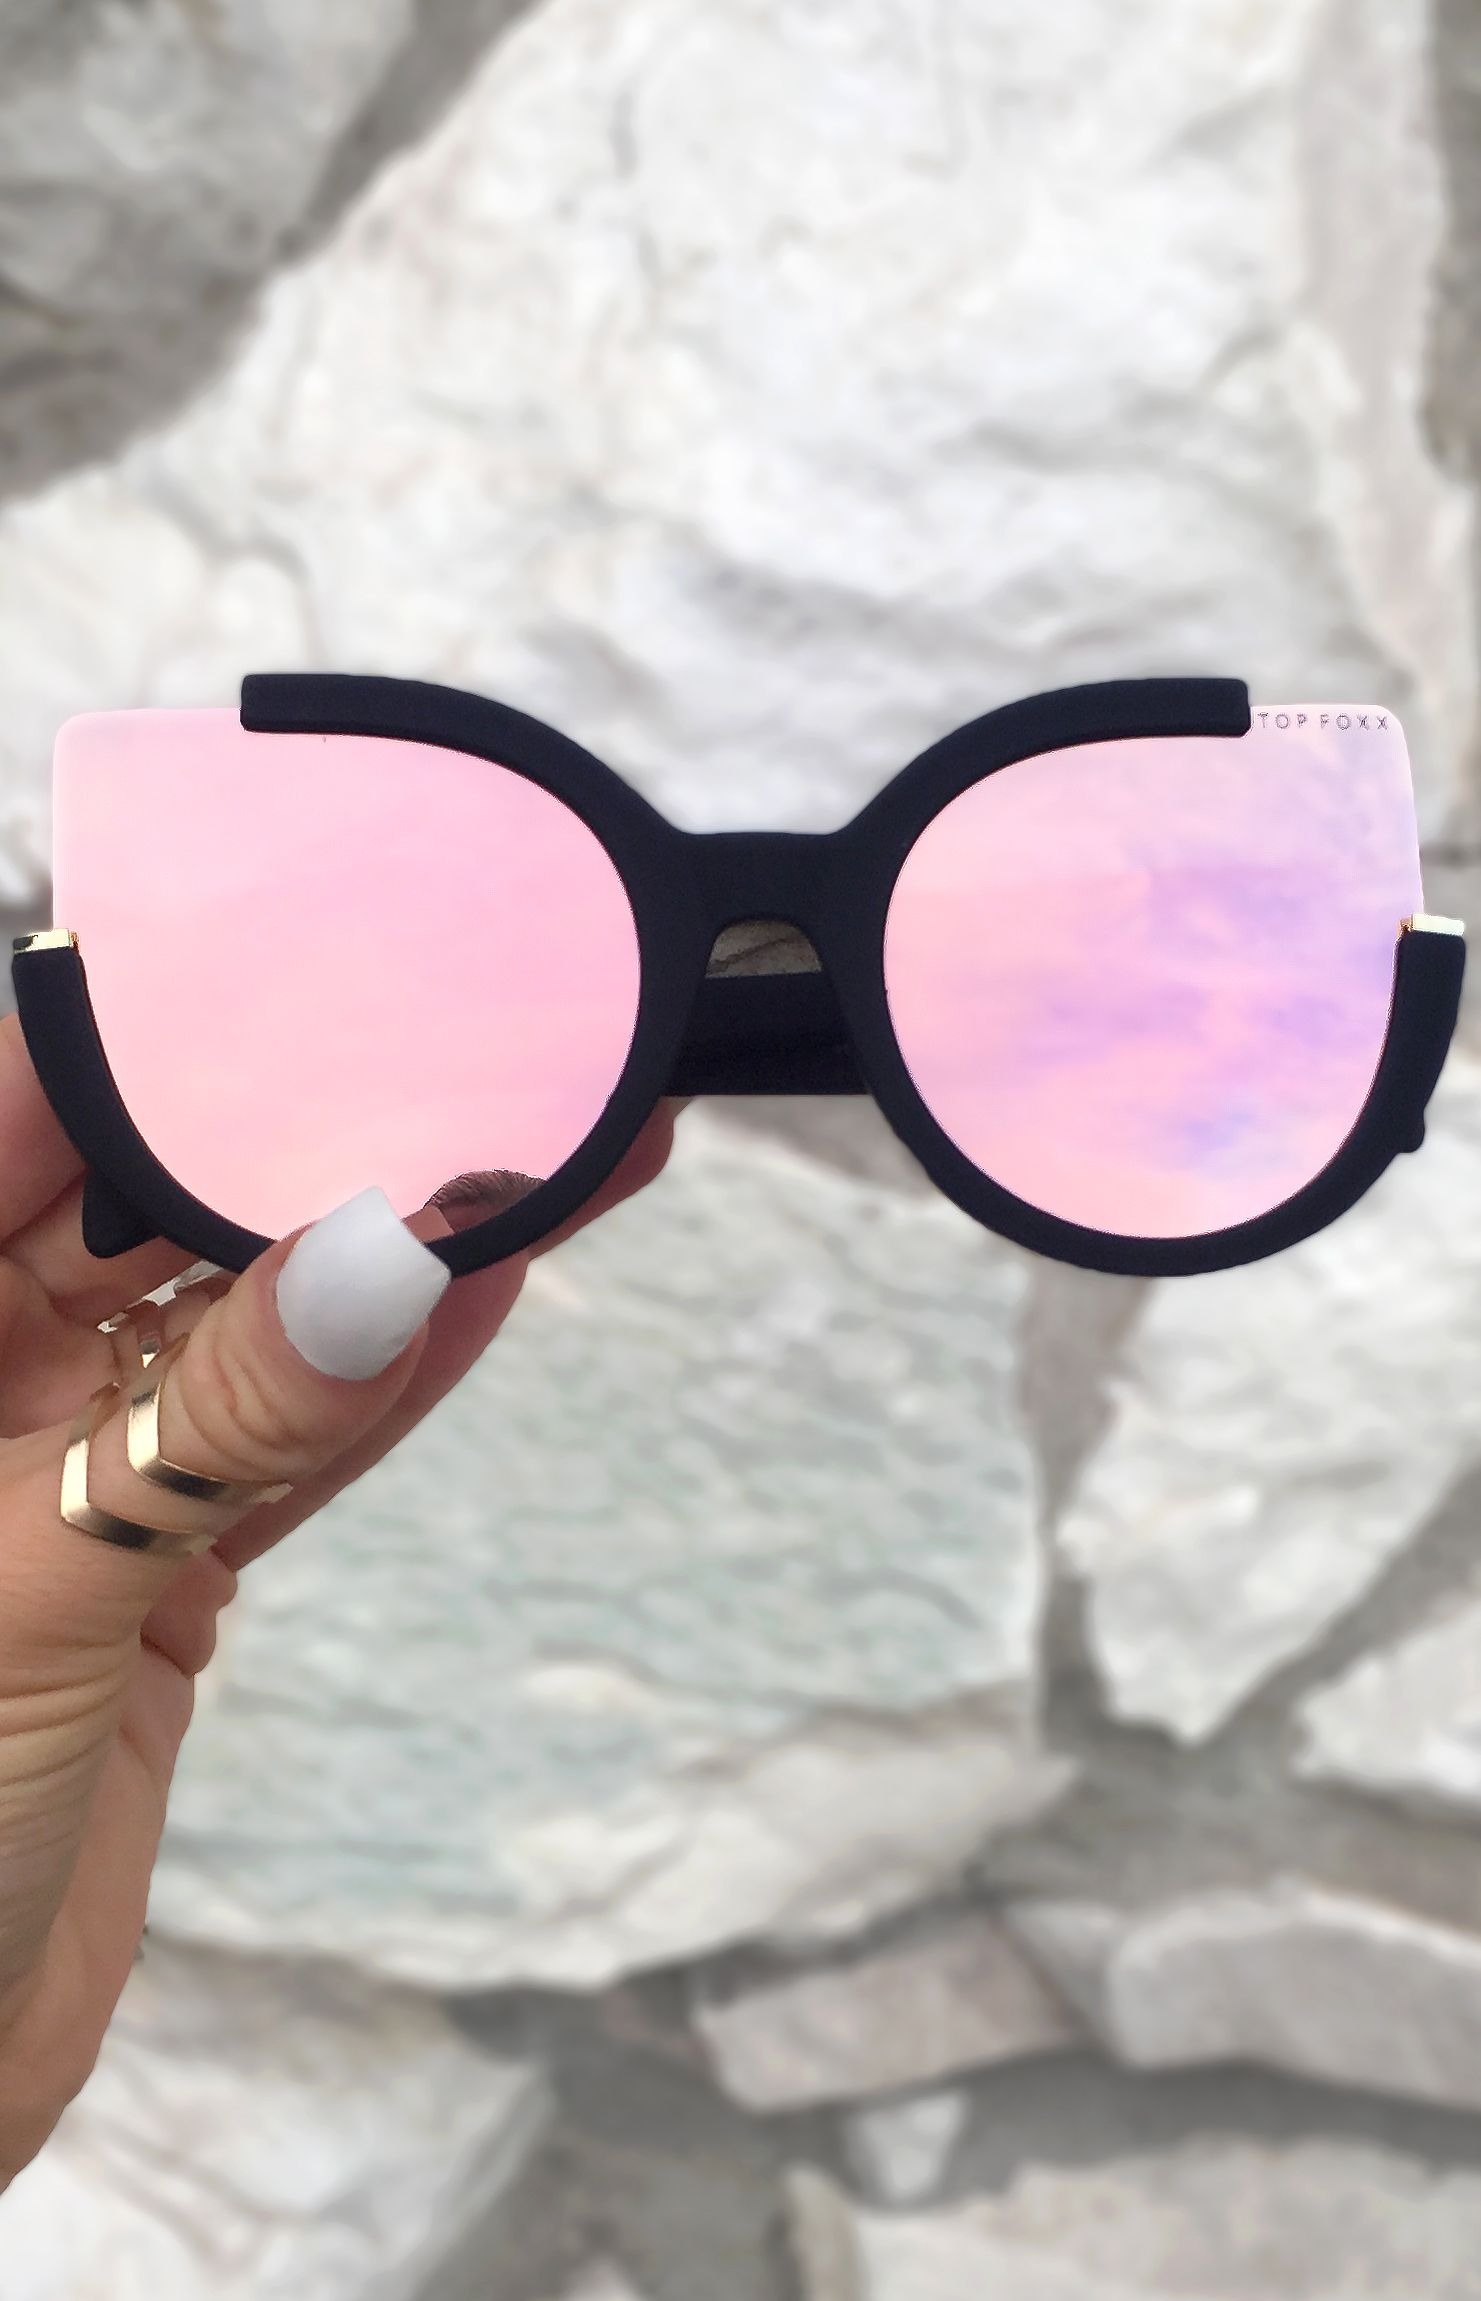 cababf9038d4 rose gold sunglasses, Chloe Sunnies, TopFoxx sunglasses, women s reflective  mirrored eyewear, pink sunglasses